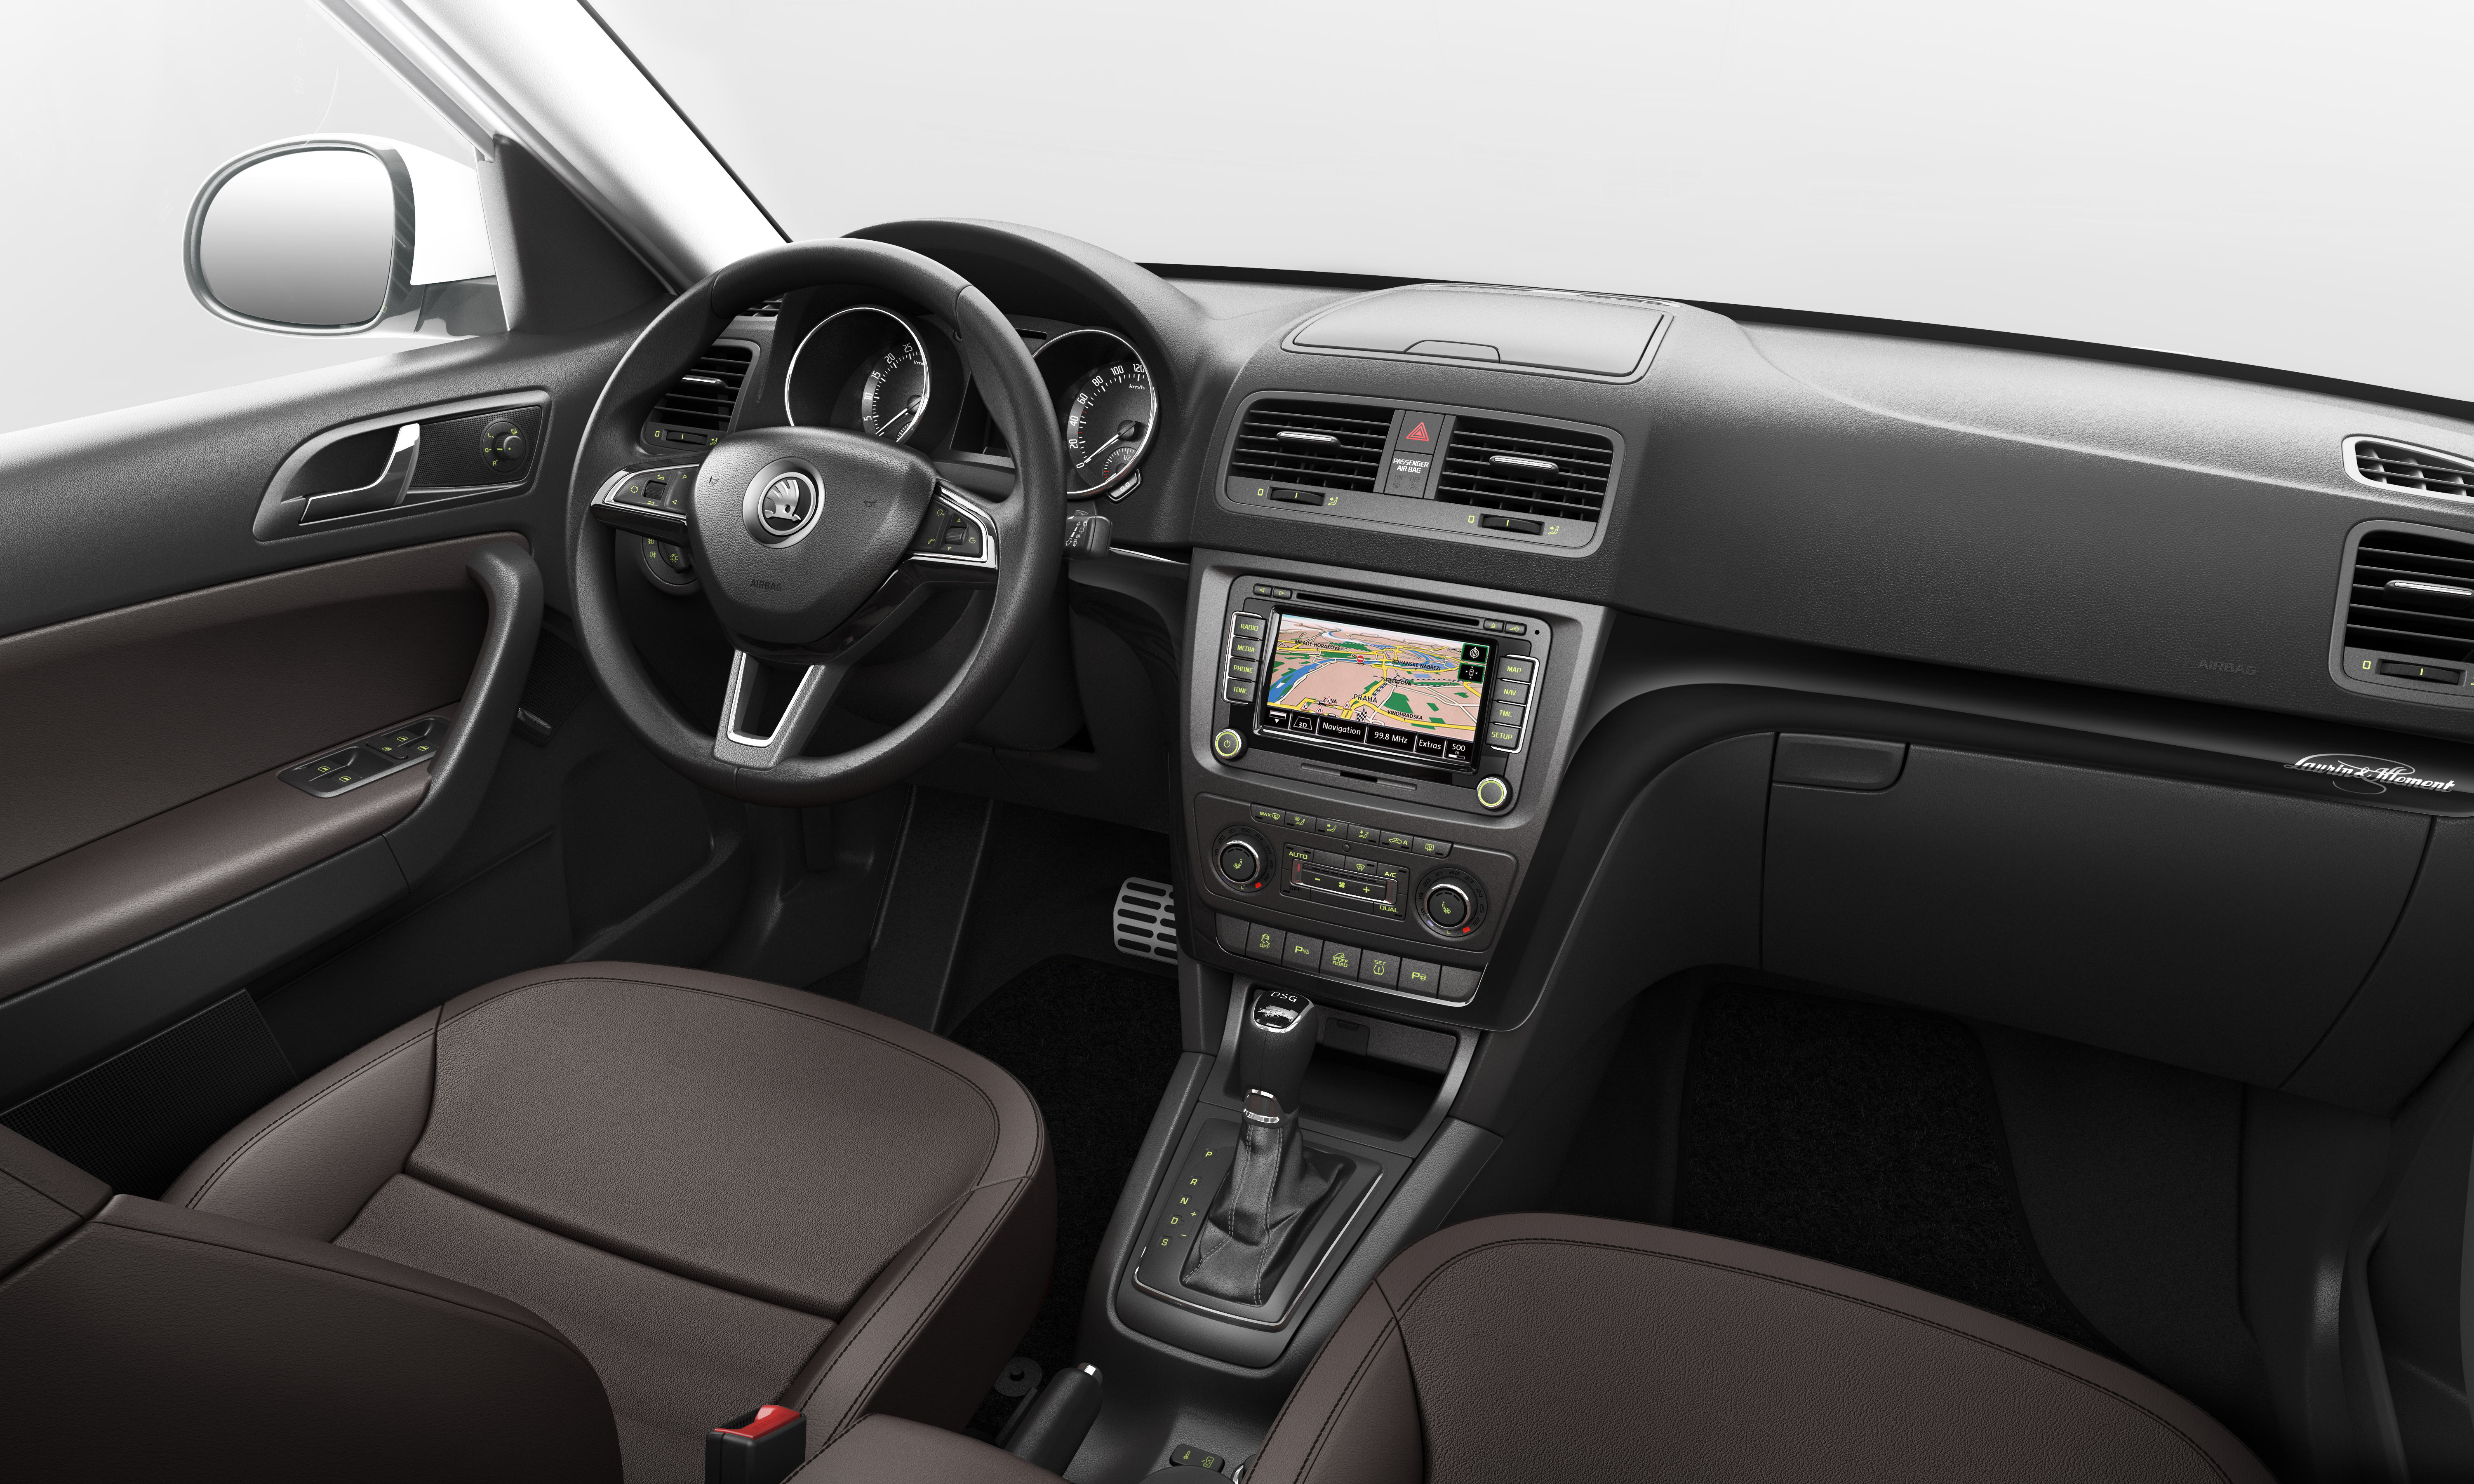 skoda yeti facelift kommt in zwei designvarianten. Black Bedroom Furniture Sets. Home Design Ideas